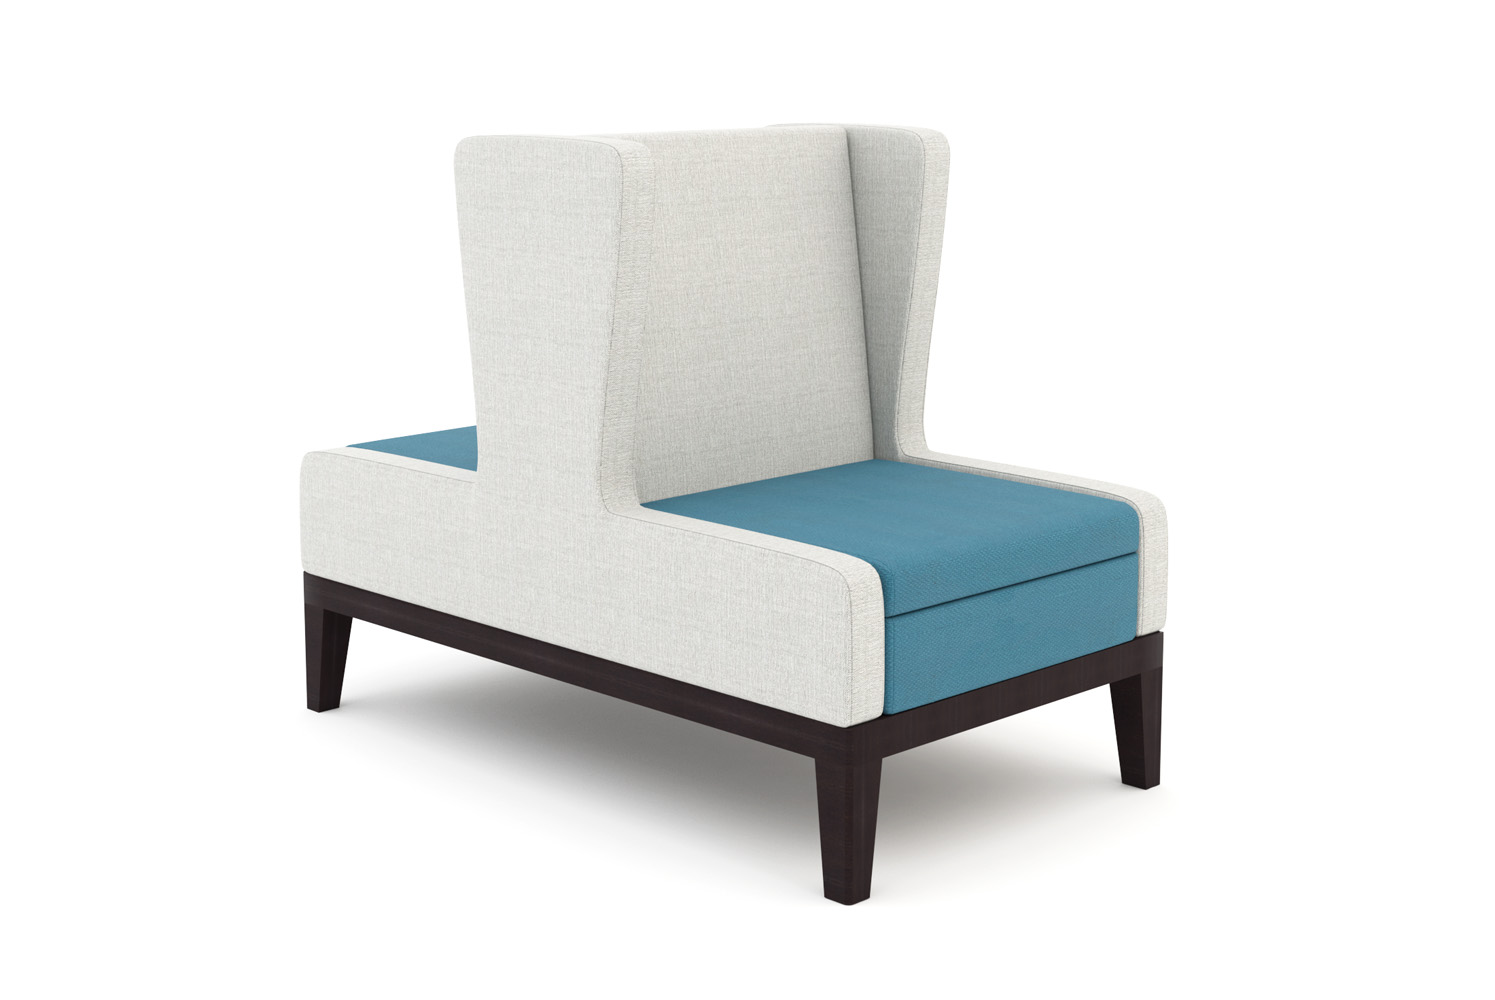 Symphony, Banquette, Single Seat, Back-to-Back